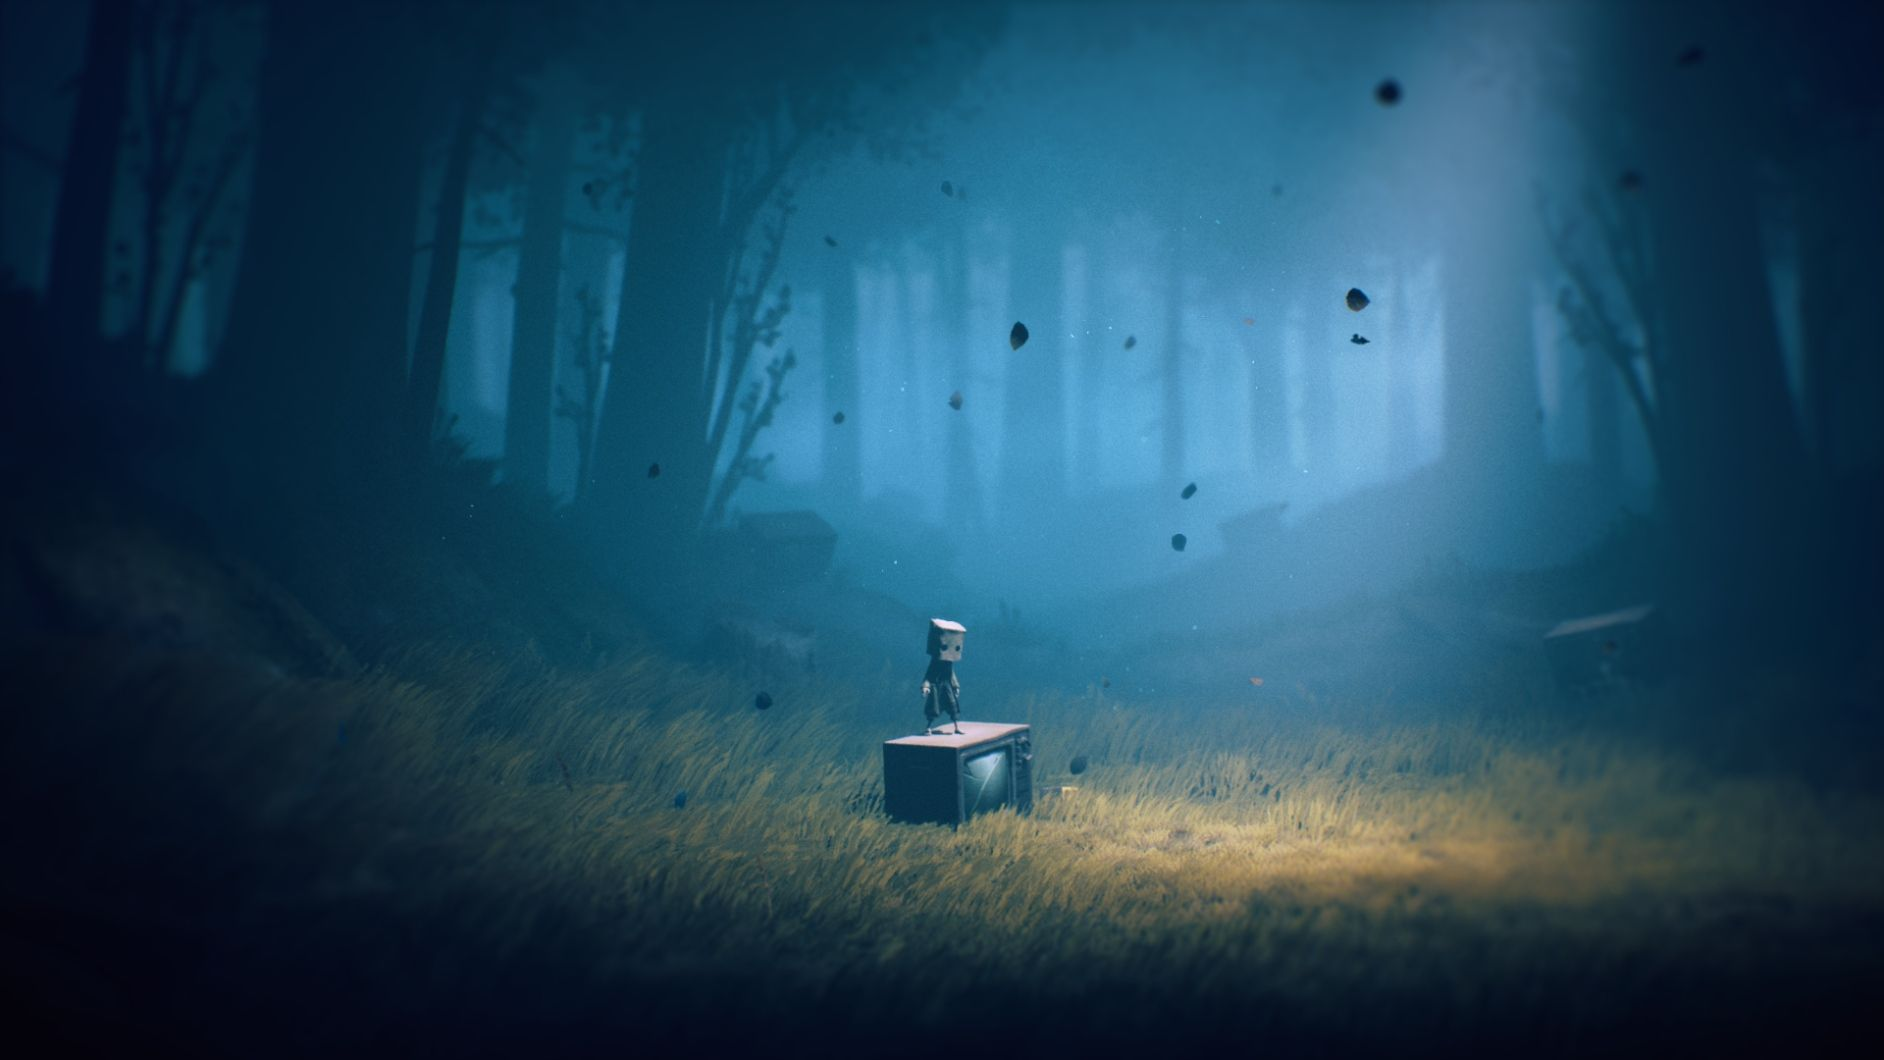 Preview: The nightmare continues in eerie Little Nightmares 2